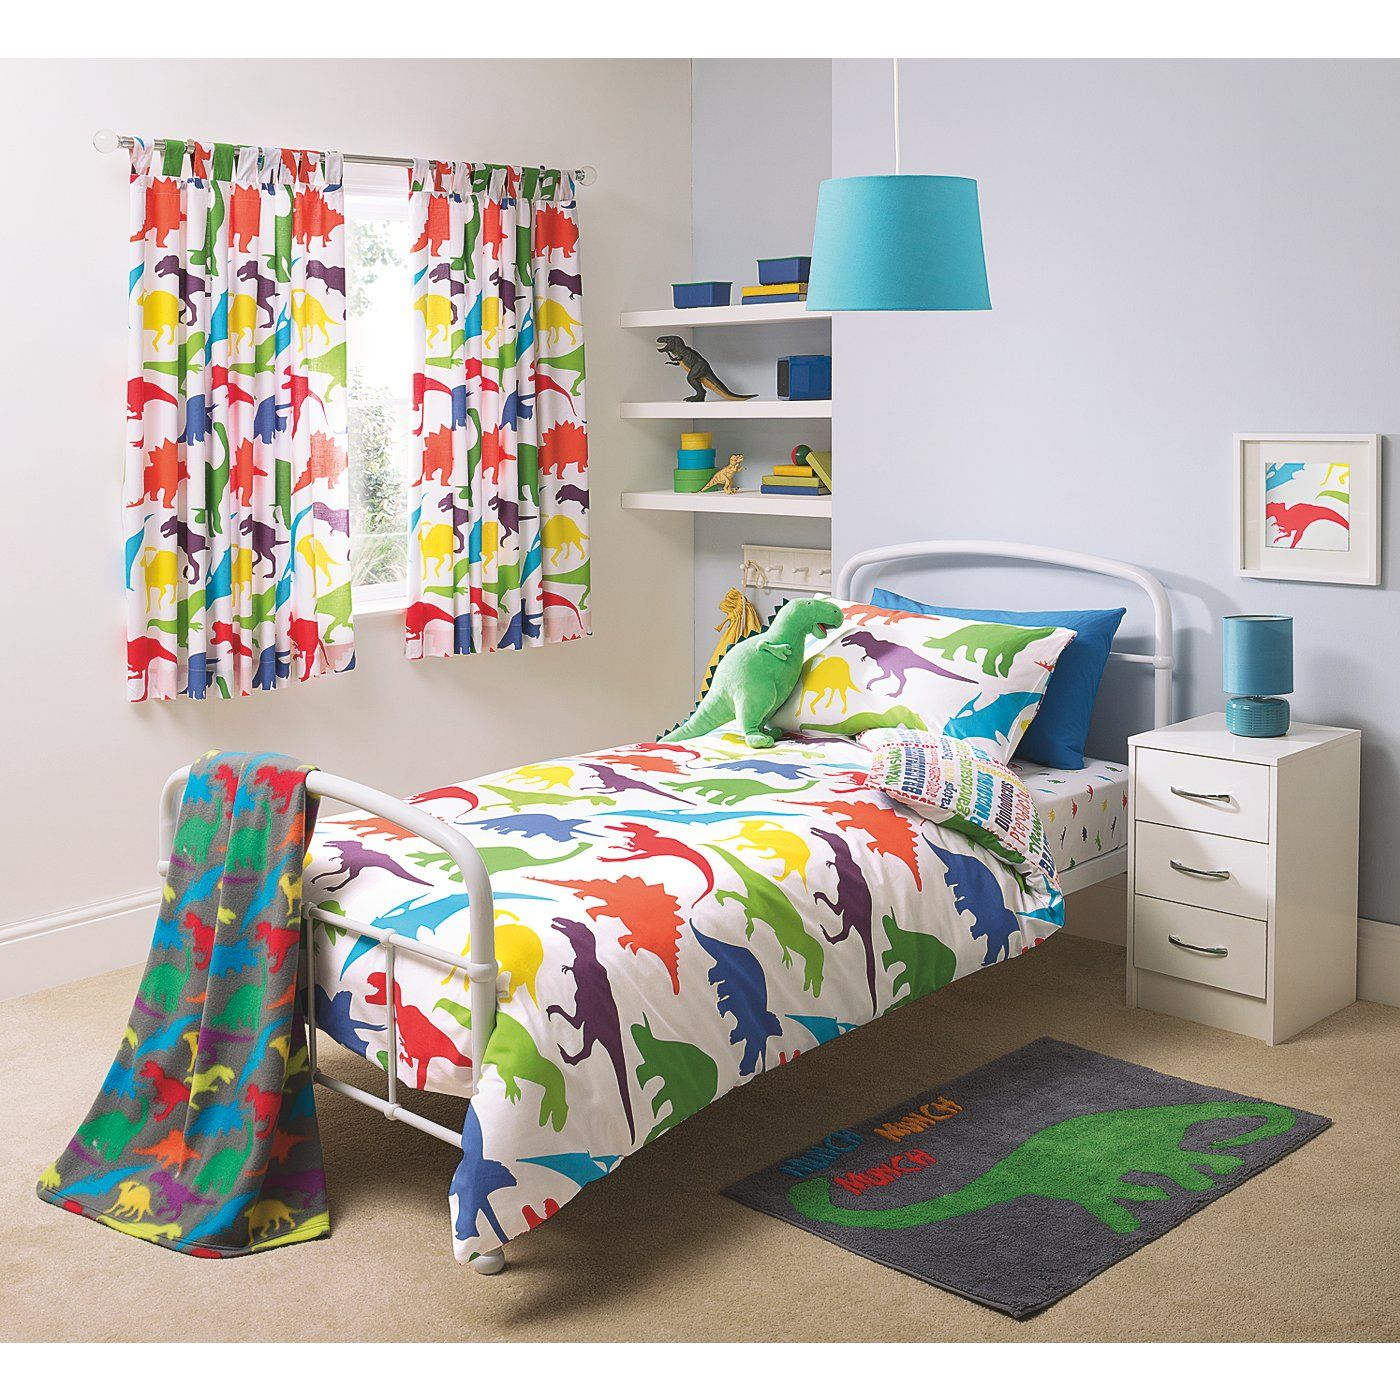 Buy George Home Dino Bedroom Set From Our Bedding Range Today From ASDA  Direct.